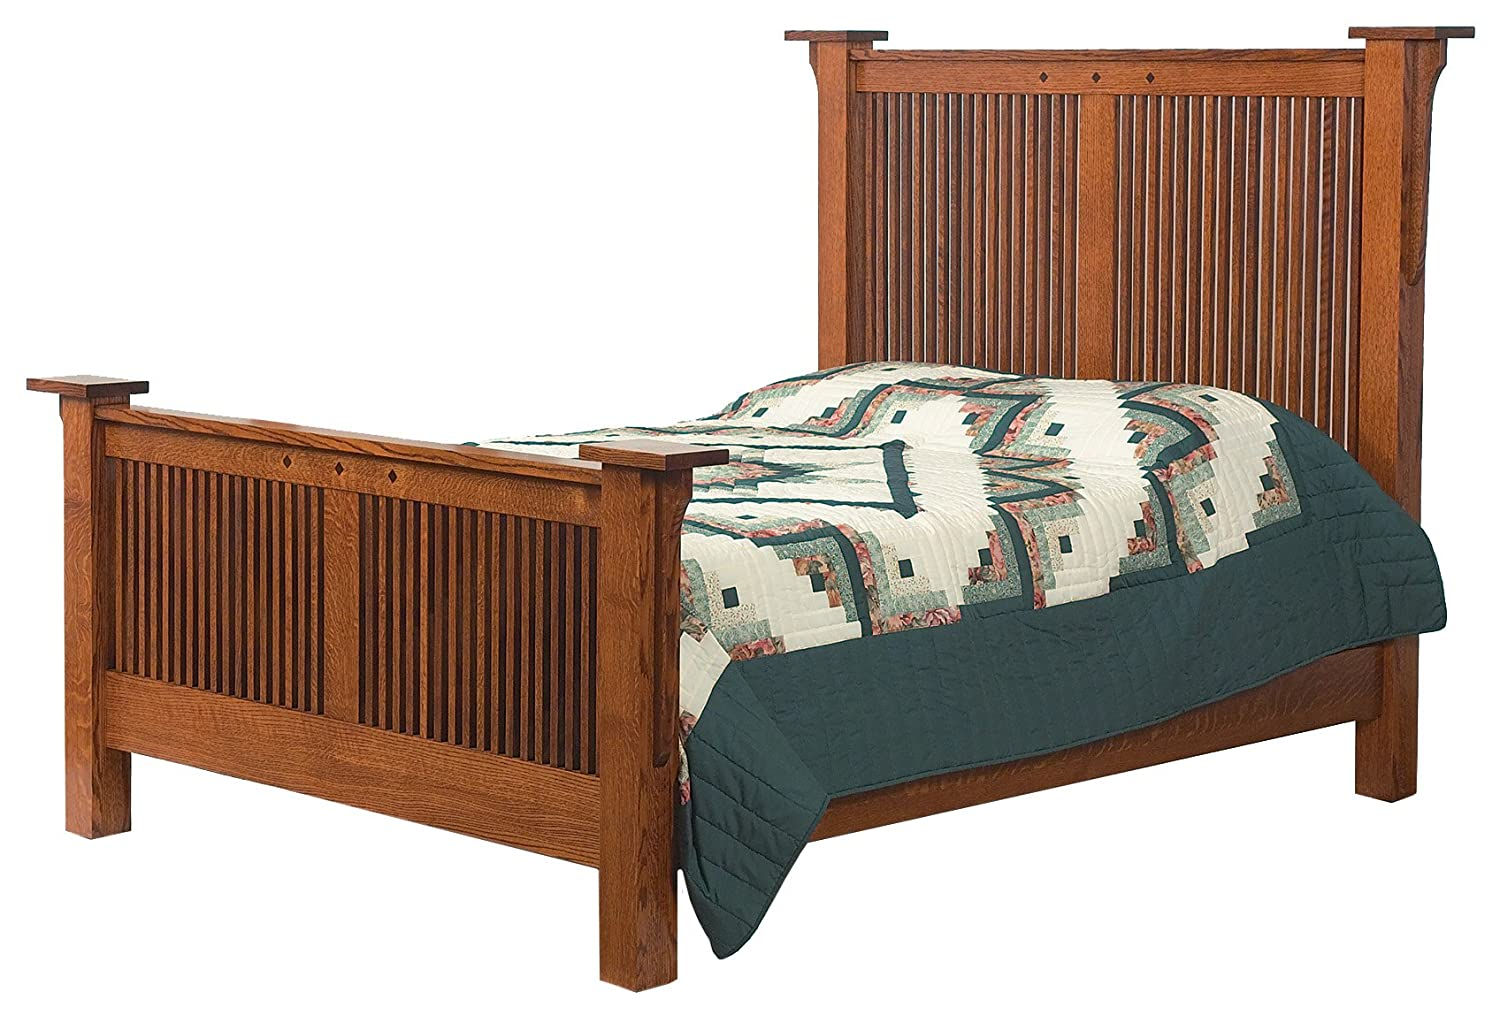 Craftsman Arts Craft Mission Bed Frame Set